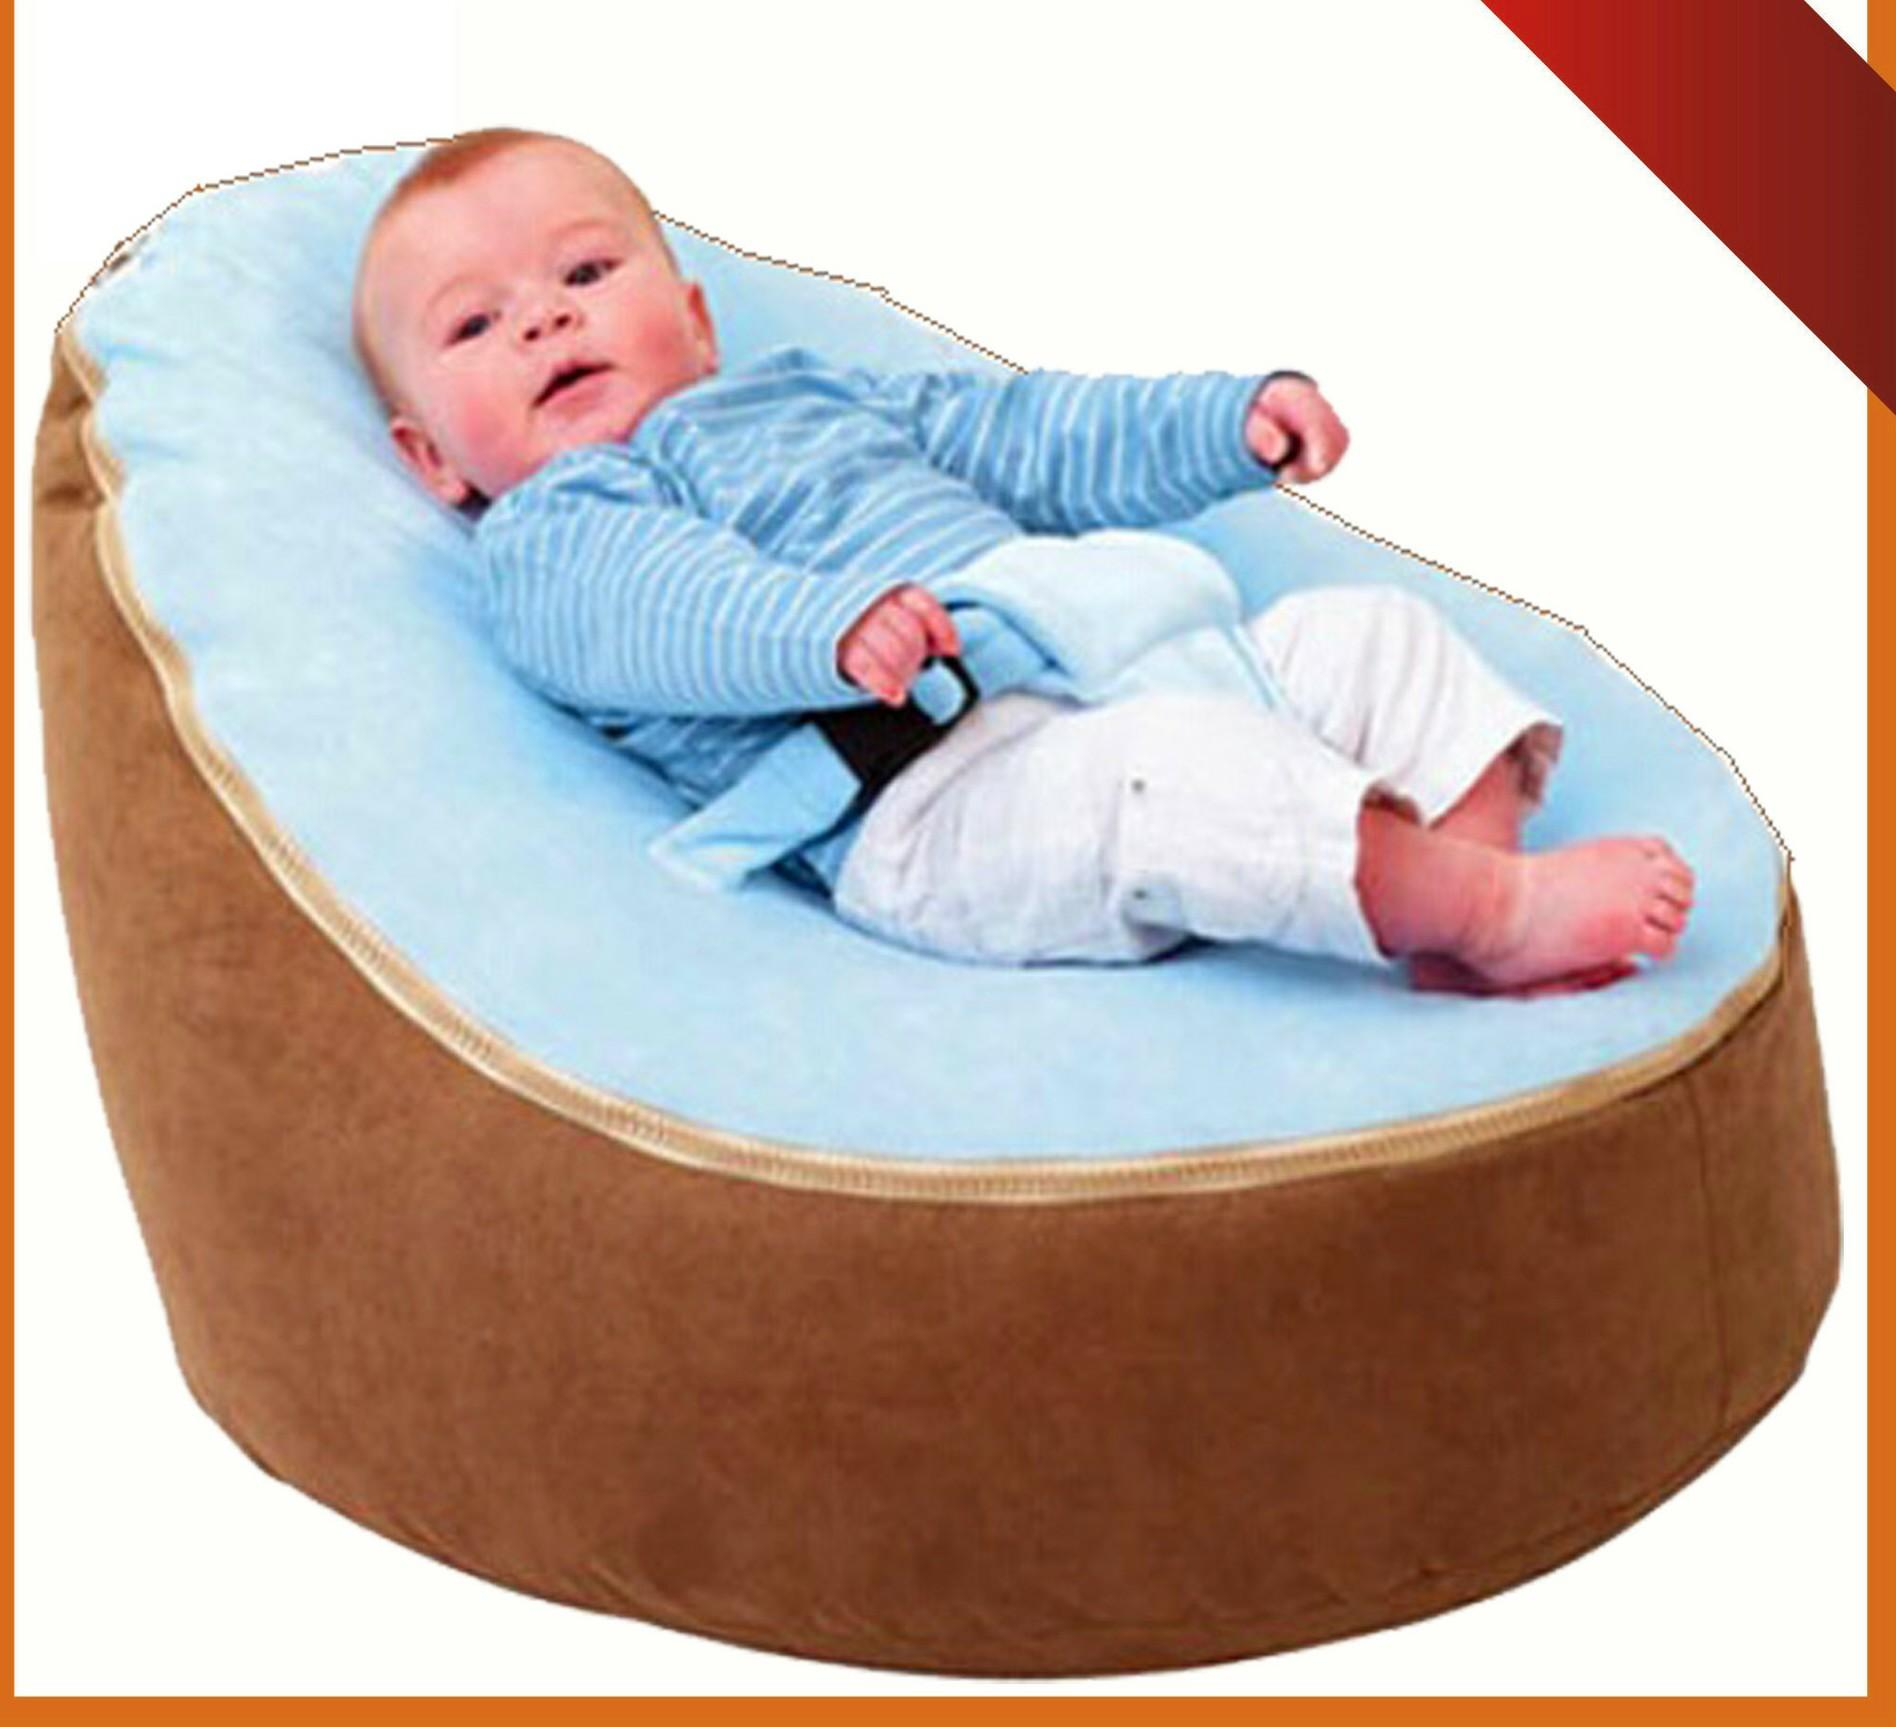 Fashion Baby Cribs Bean Bag ChildrenS Nursery Bedding Travel Safety Nursing Bed Chair Multi Colors Can Be Customized New Crib Cheap